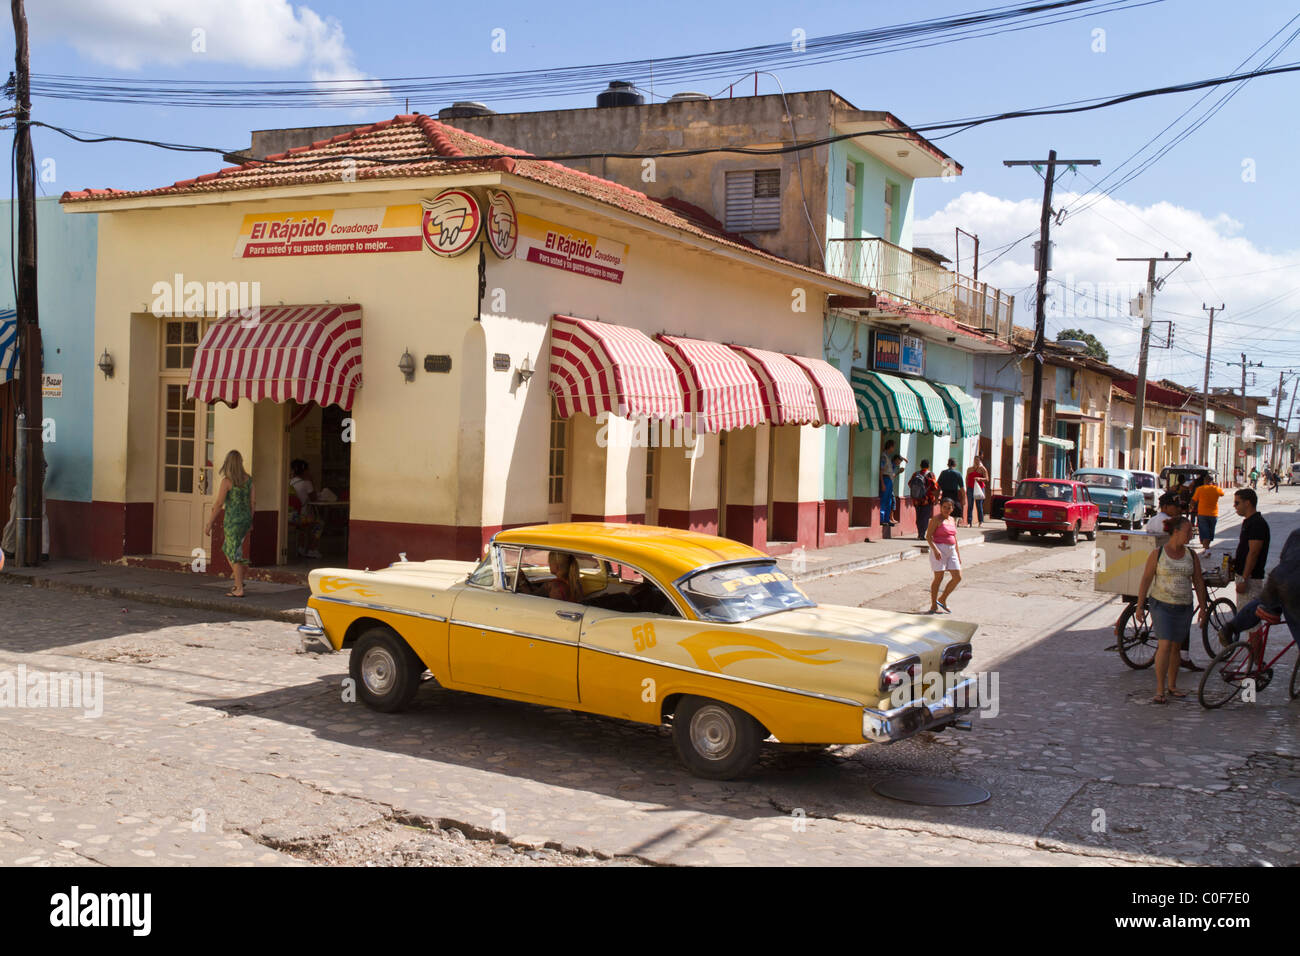 Street with Oldtimer, Trinidad Cuba - Stock Image